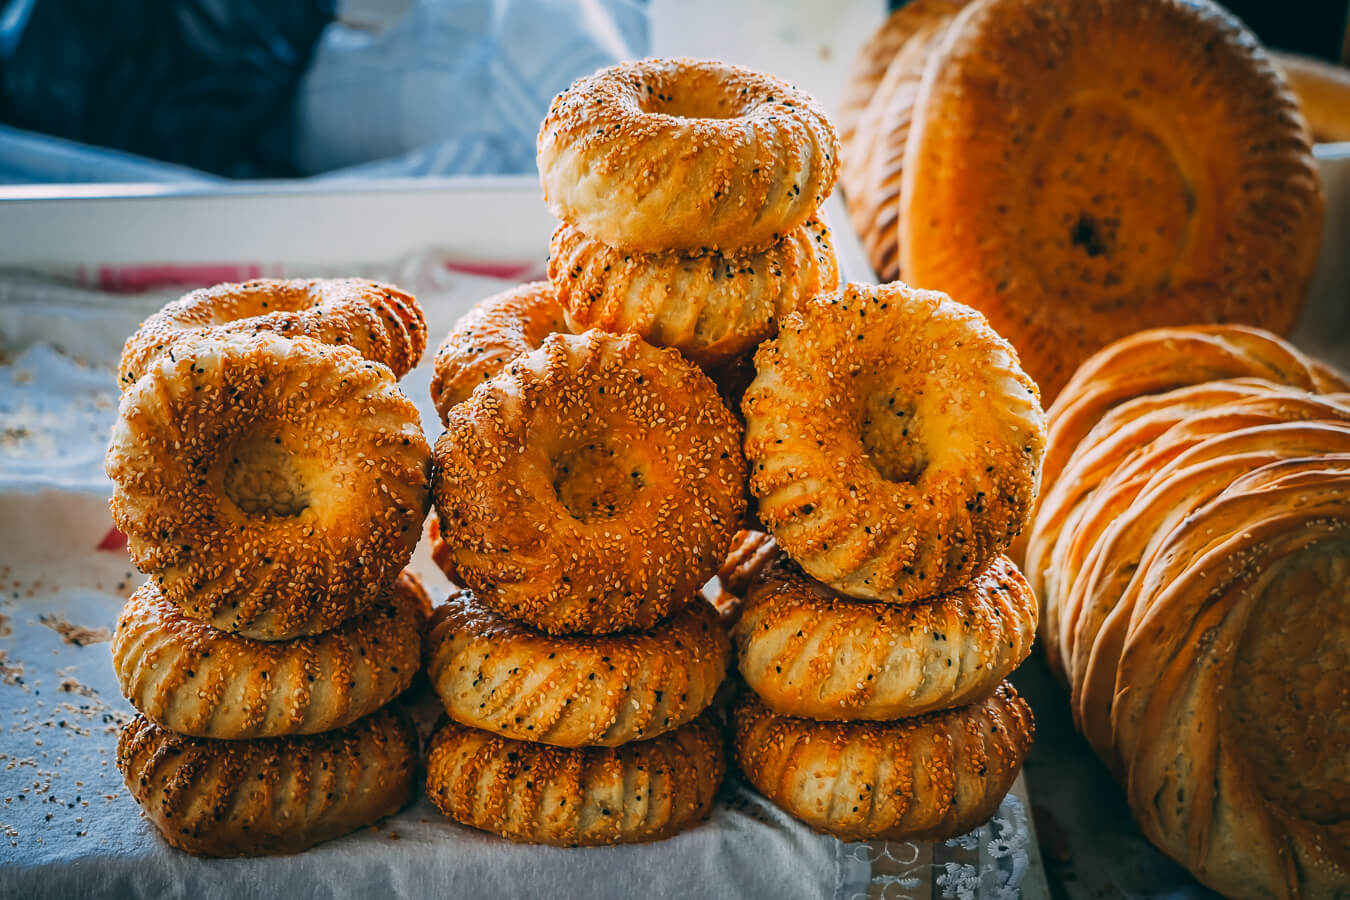 Uzbek round bread is called also lepeshka